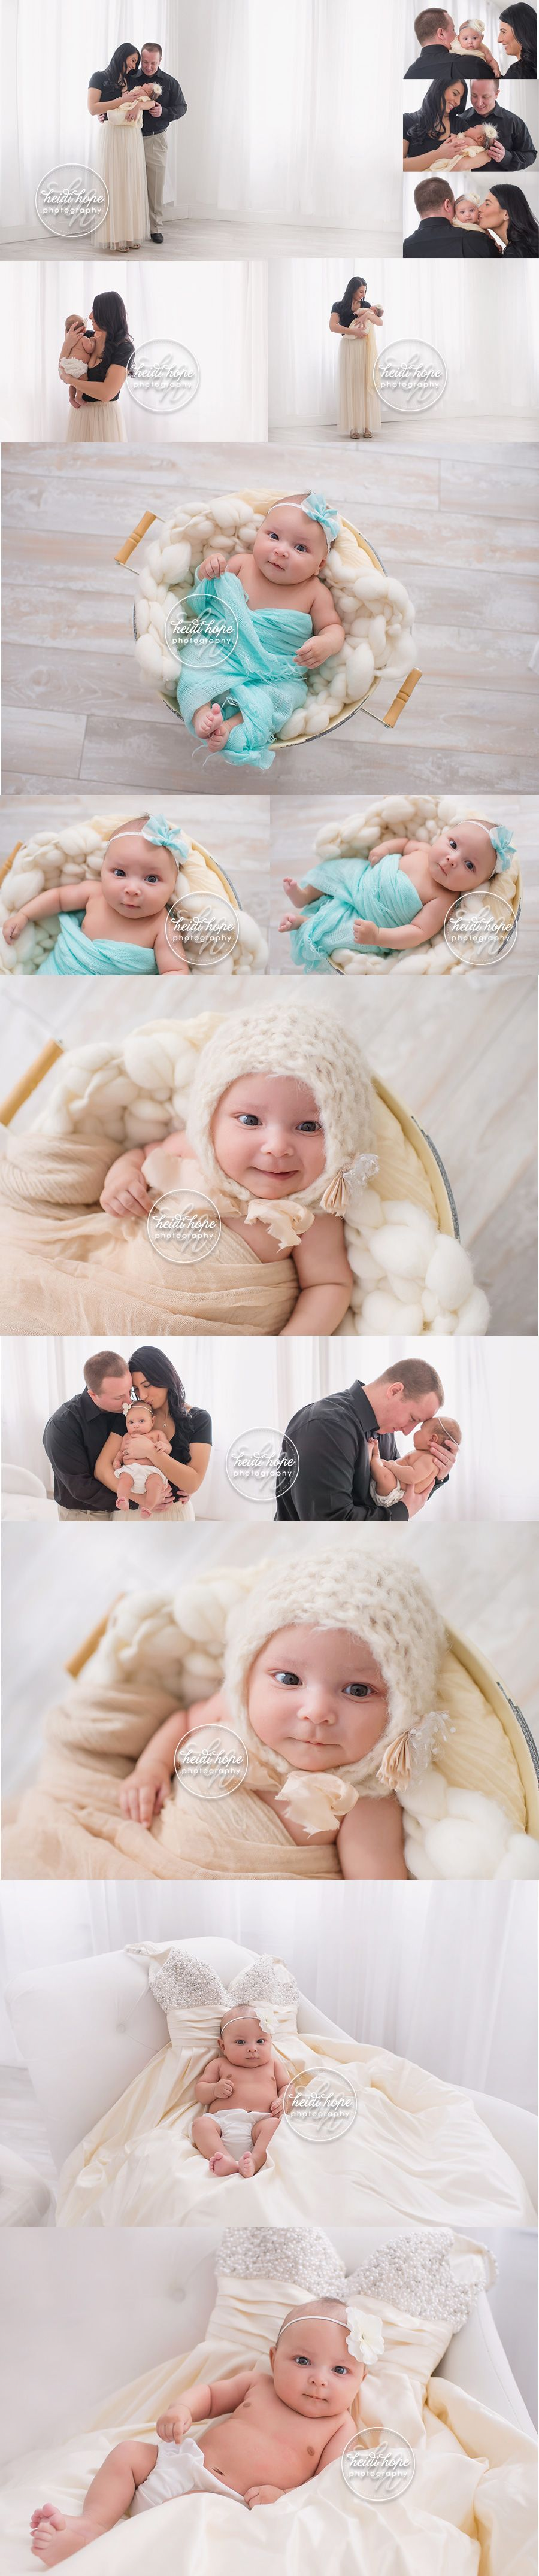 6-week-old-newborn-lifestyle-session-with-parents